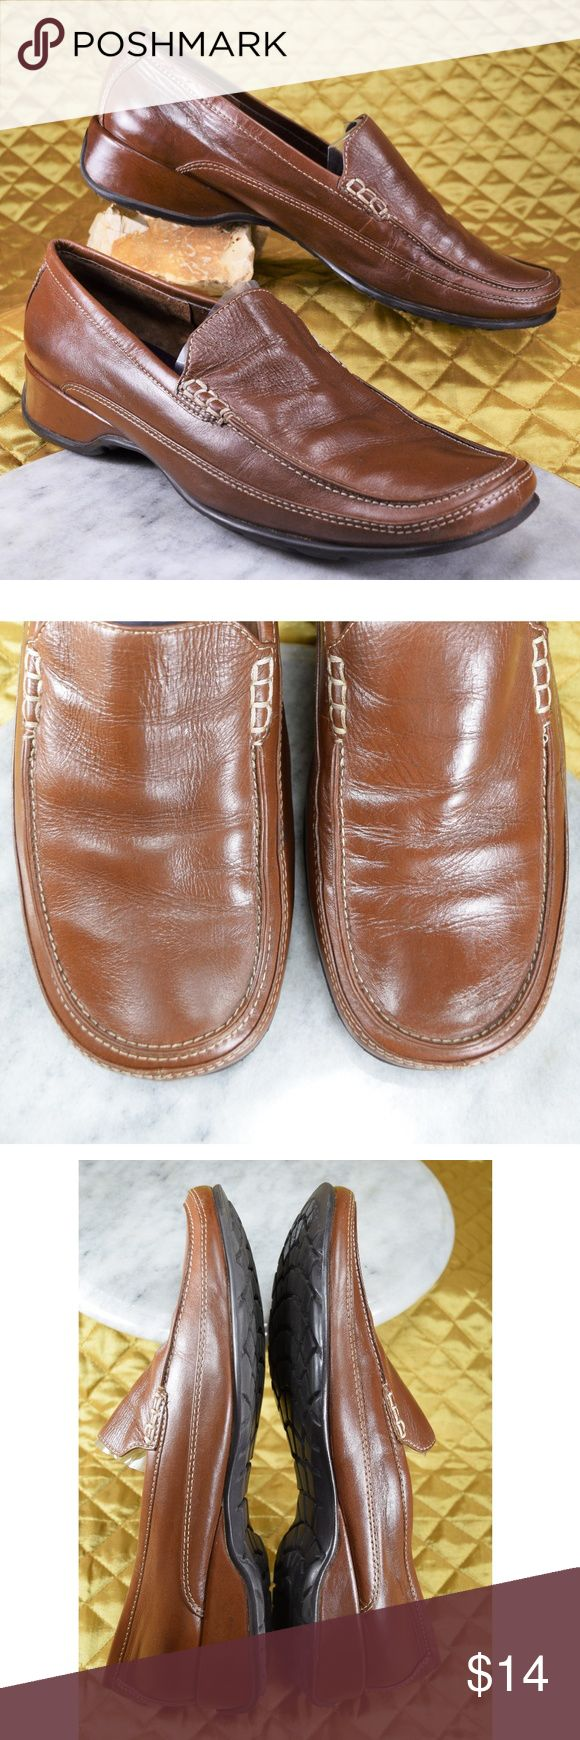 "Crazy Horse Liz Claiborne Size 9.5M Brown Loafers Women's beautiful brown leather loafers by Liz Claiborne's ""Crazy Horse"" They are in excellent, CLEAN pre-owned condition!  **If you appreciate old school quality - you're in the right place. We don't just sell products, we put time & work into them. PLUS. we ship FAST! Usually within 1 business day! Thank you for poshing in my closet!! 😘🤟🌹 Liz Claiborne Shoes Flats & Loafers"